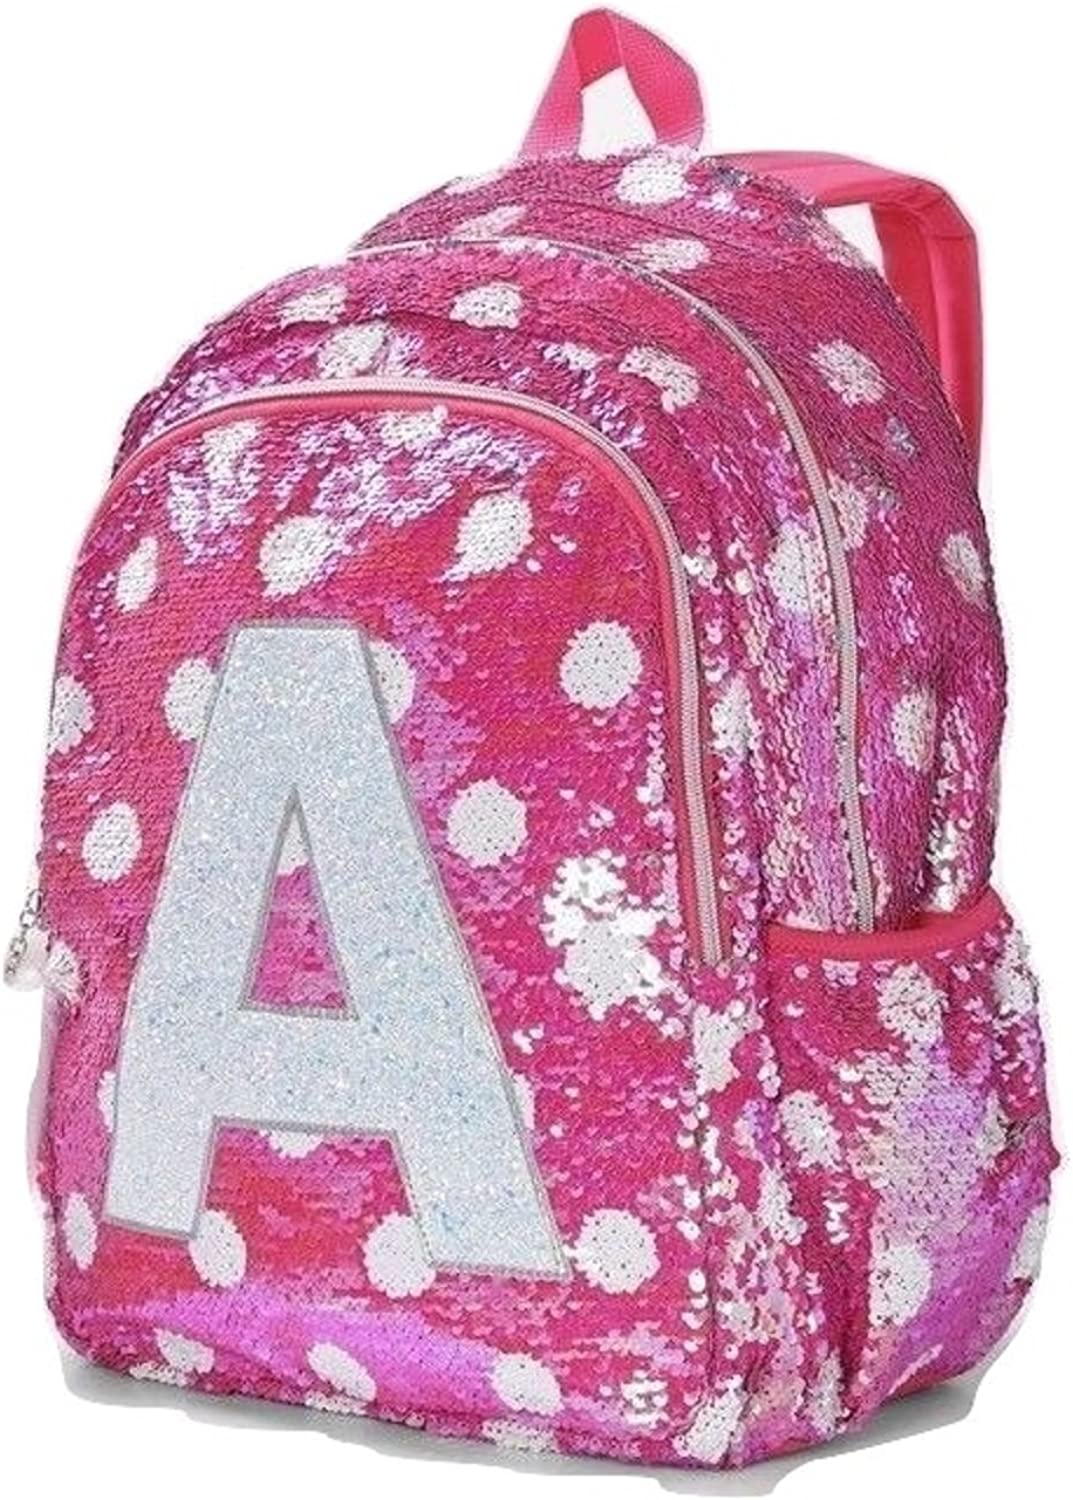 Justice Pink Flip Sequin Initial Mini Backpack